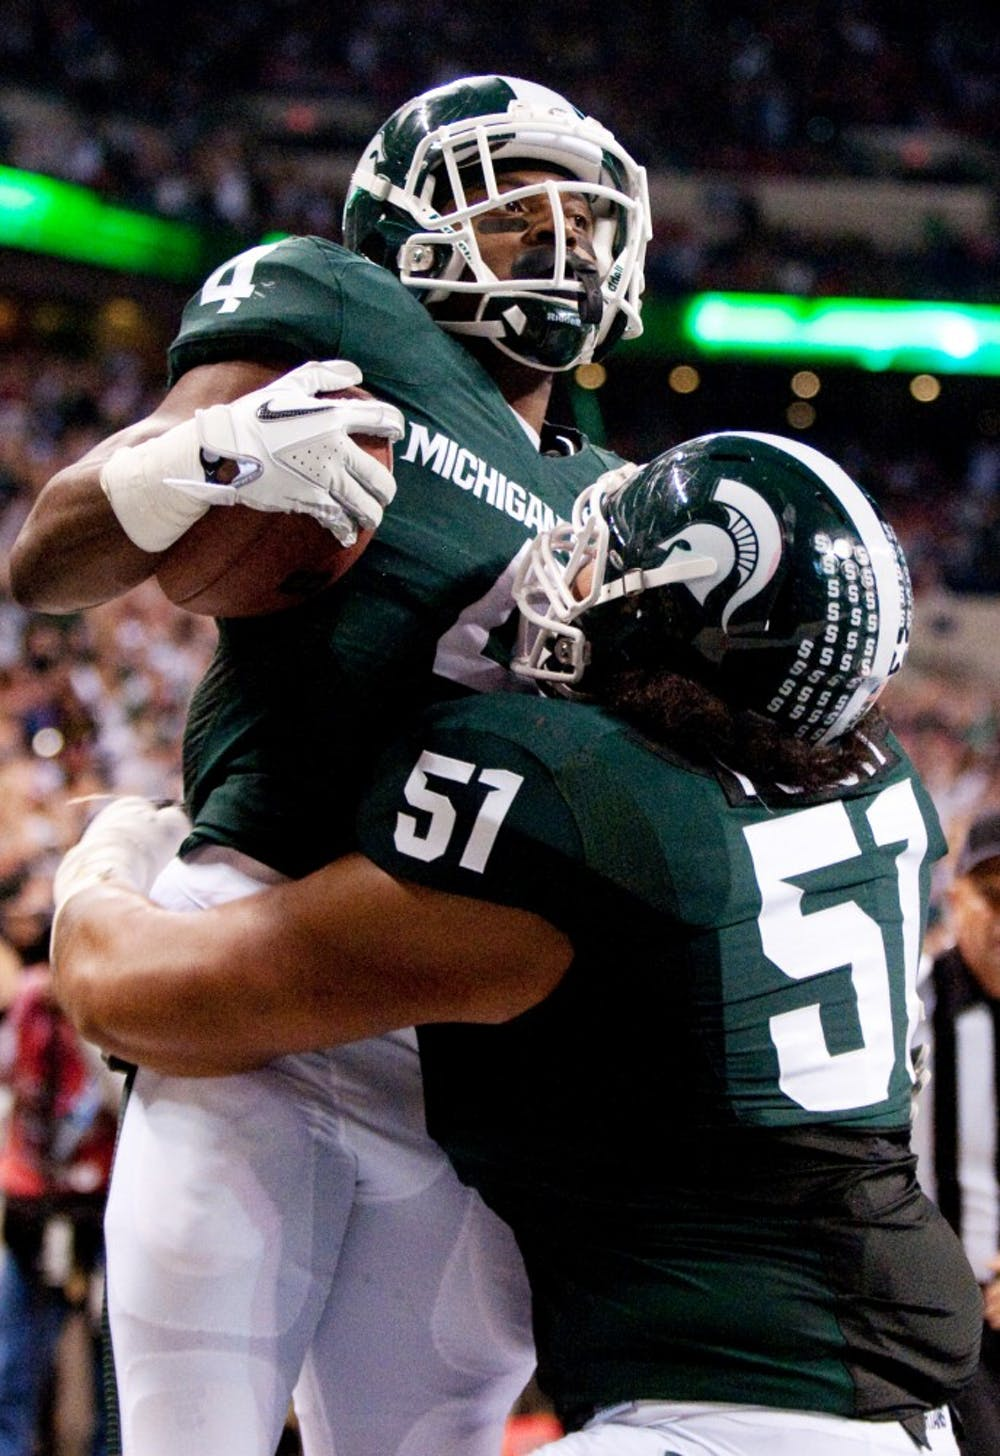 Junior offensive tackle Fou Fonti celebrates with junior running back Edwin Baker after he scored a toucdown. The Spartans lost to the Wisconsin Badgers, 42-39, in the Big Ten Championship game on Saturday night at Lucas Oil Stadium in Indianapolis, Ind. Josh Radtke/The State News